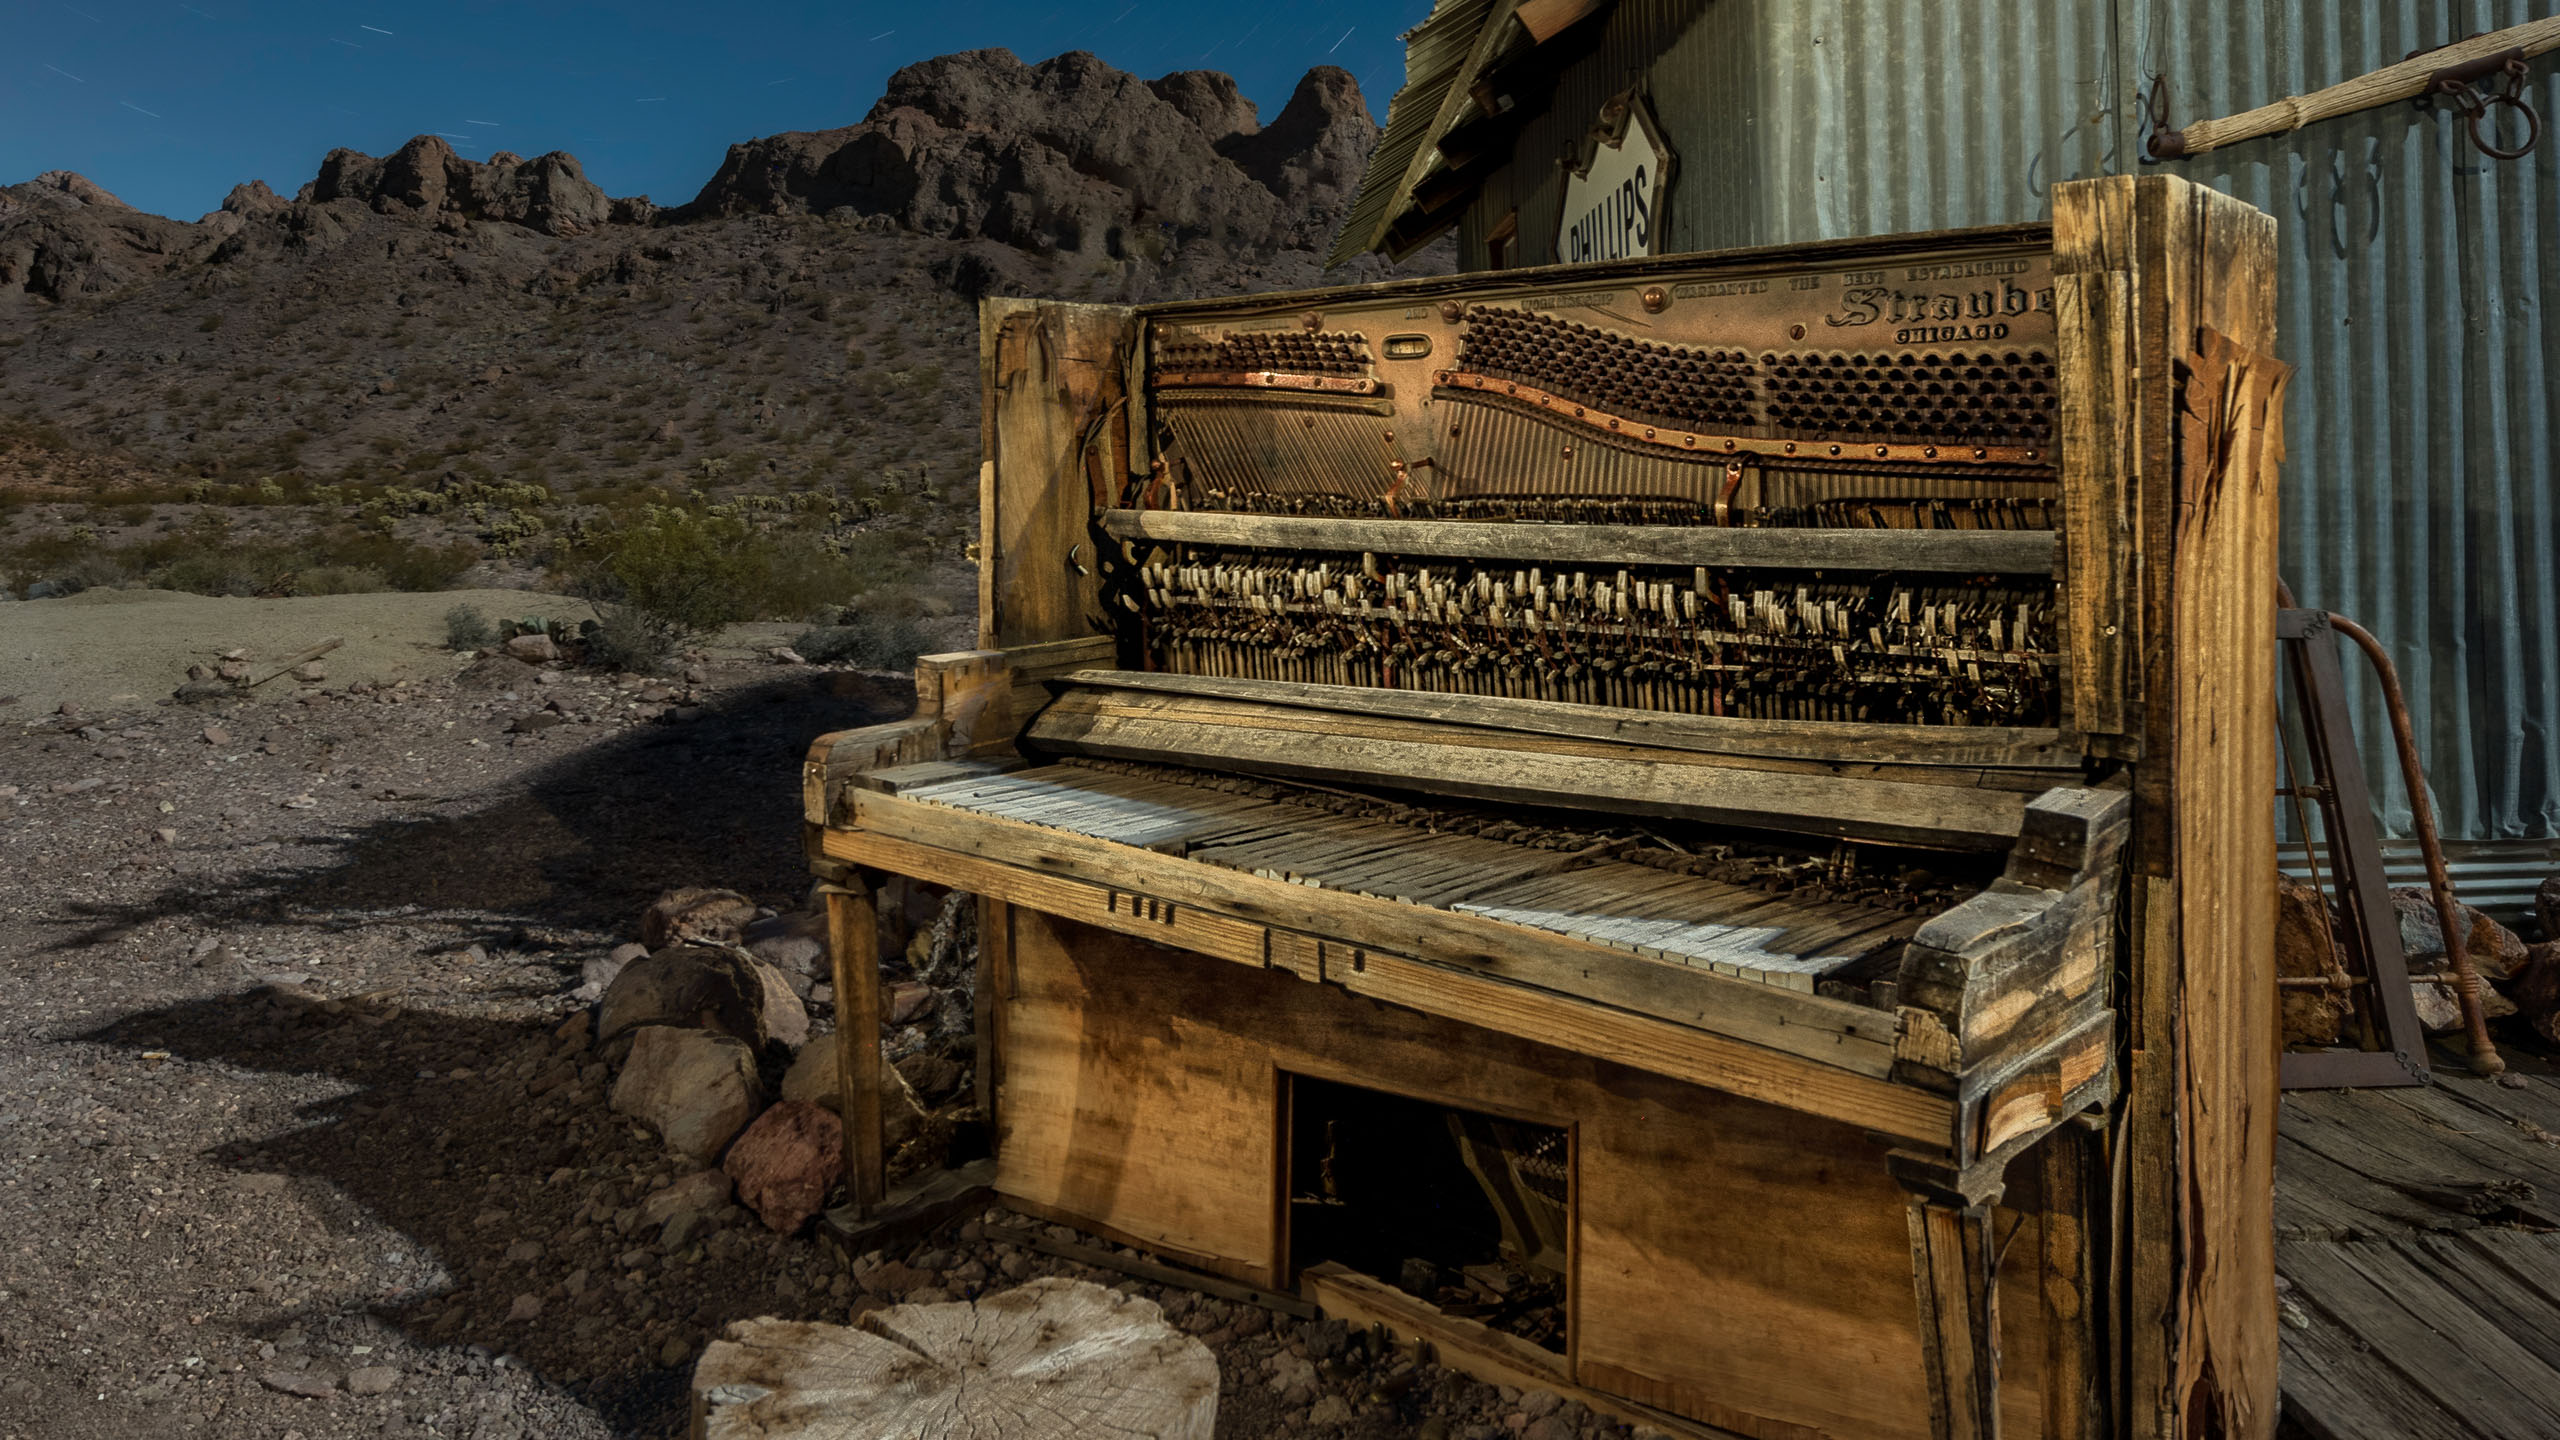 4890_kenlee_october2019trip_191010_1958_6mtotal-3mf8iso320_nelson-piano_photofocus header 2560x1440px